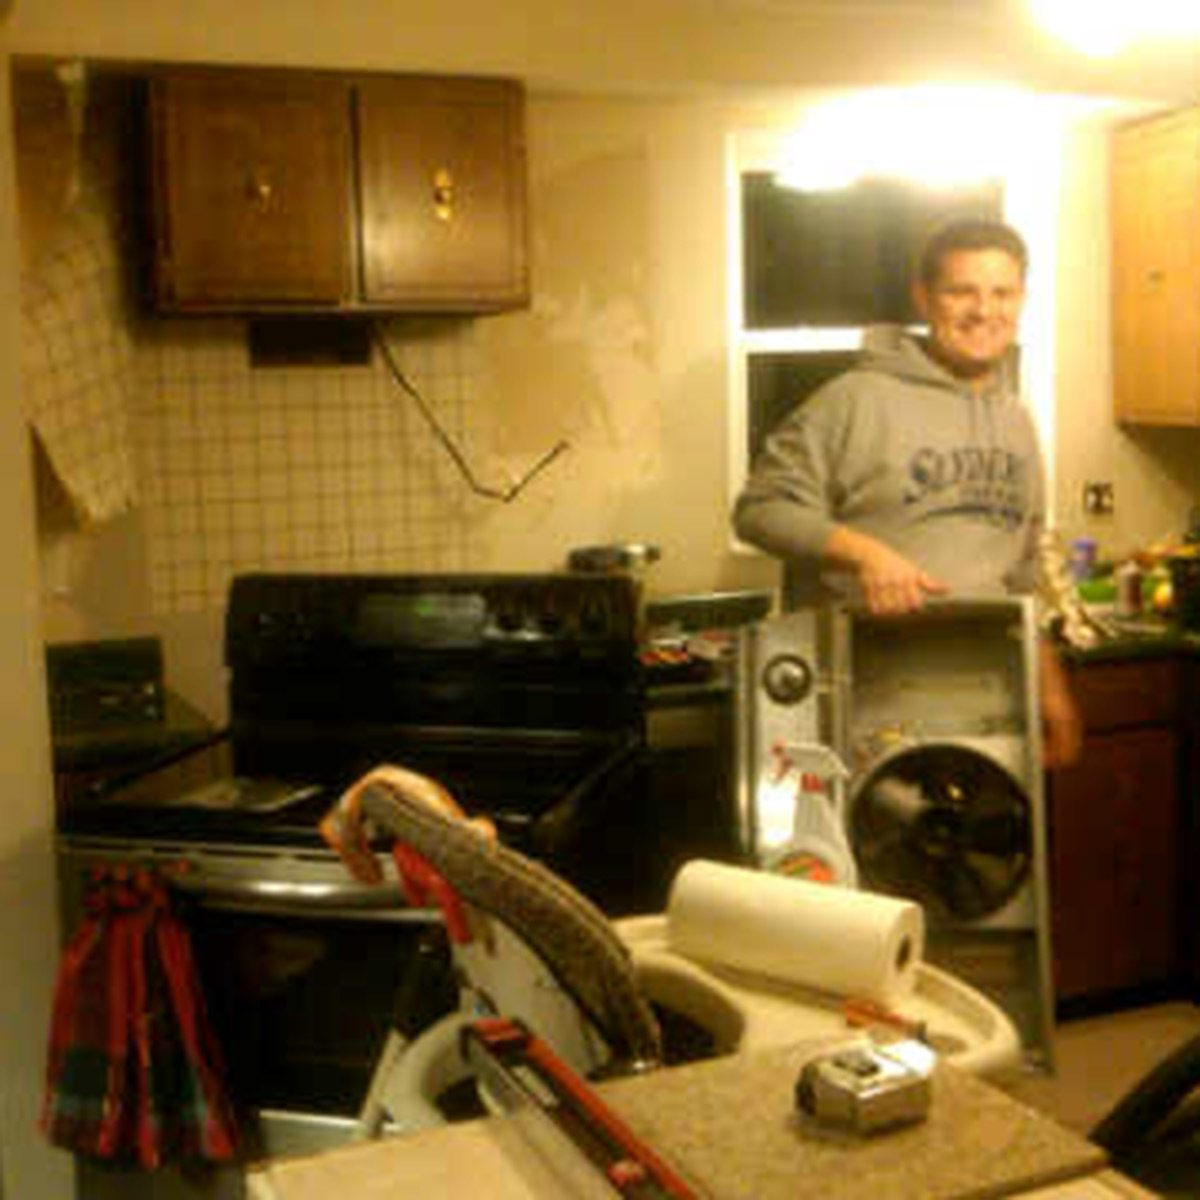 Kitchen Remodel Tear Down